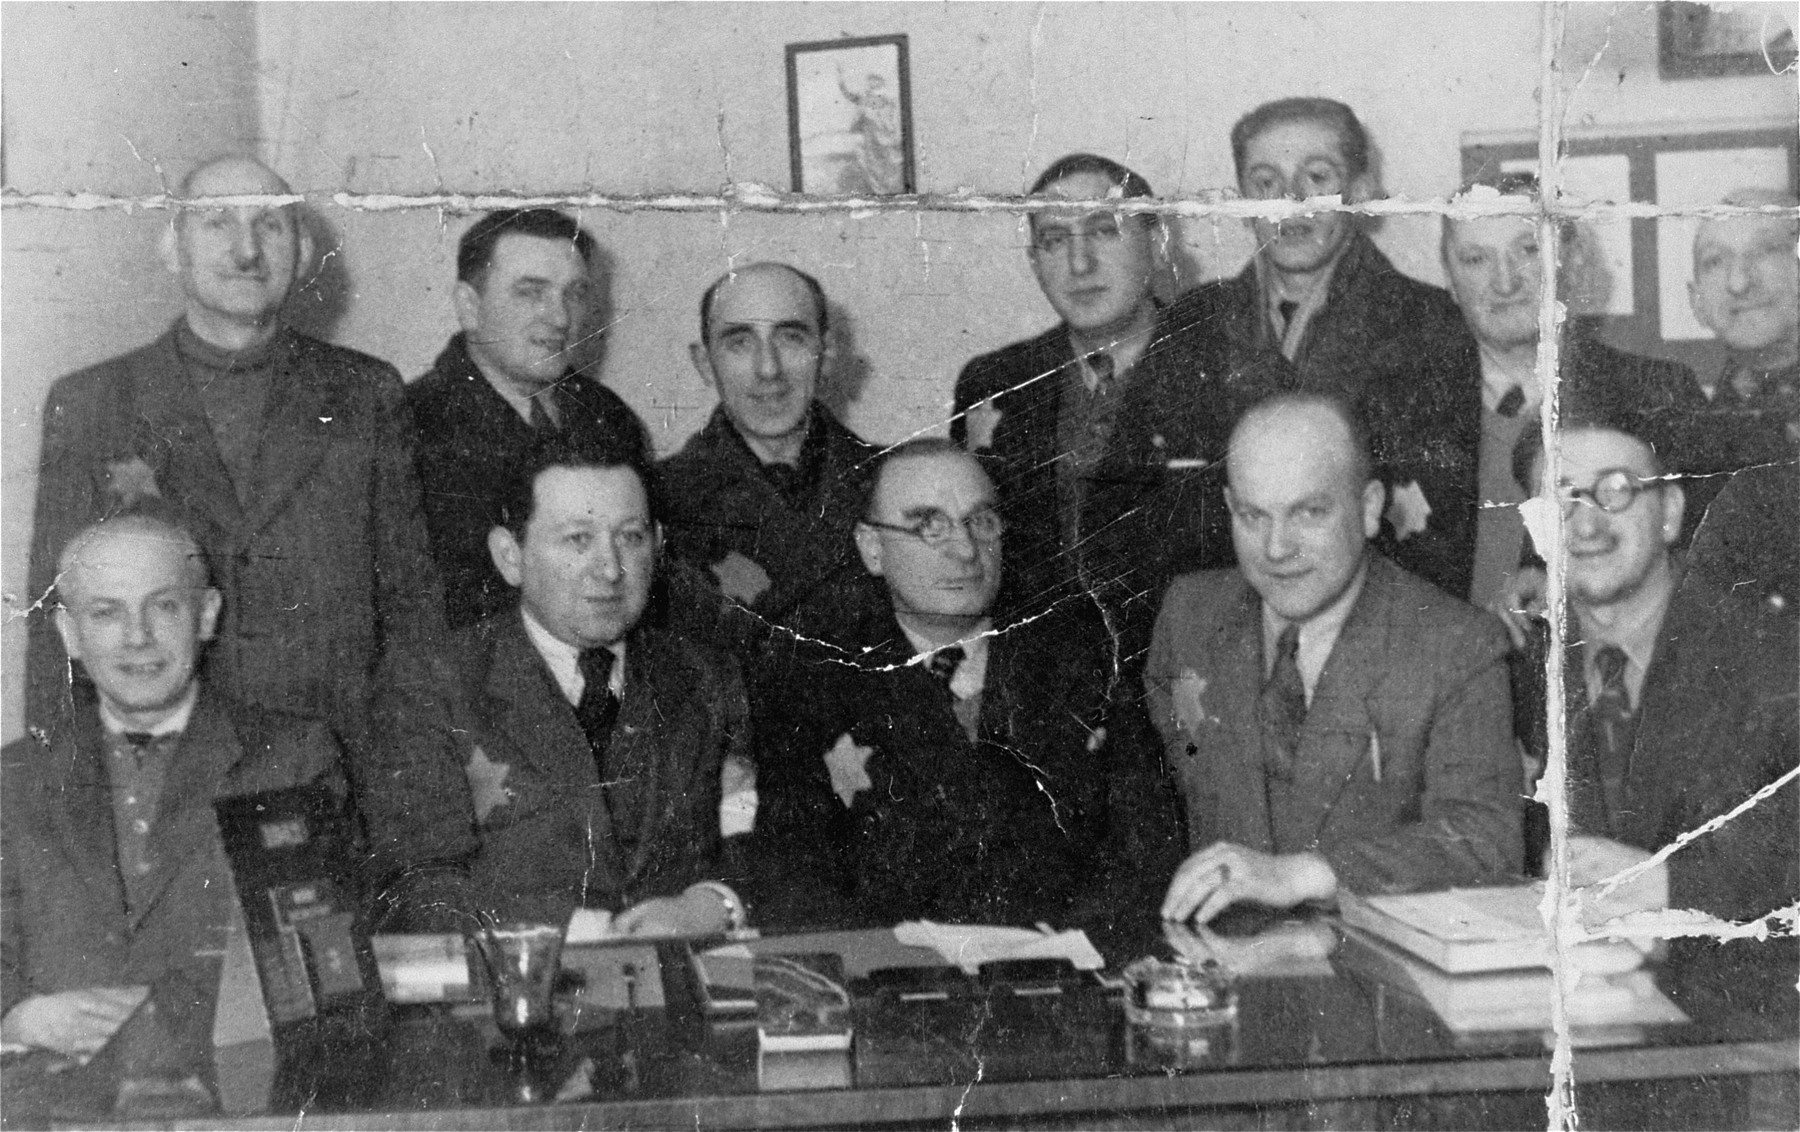 Group portrait of members of the Jewish council in an office in the Lodz ghetto.  Among those pictured are Zygmunt Reingold, director of food supply (seated second from the left) and Max Szczesliwy, co-director (seated in the middle).